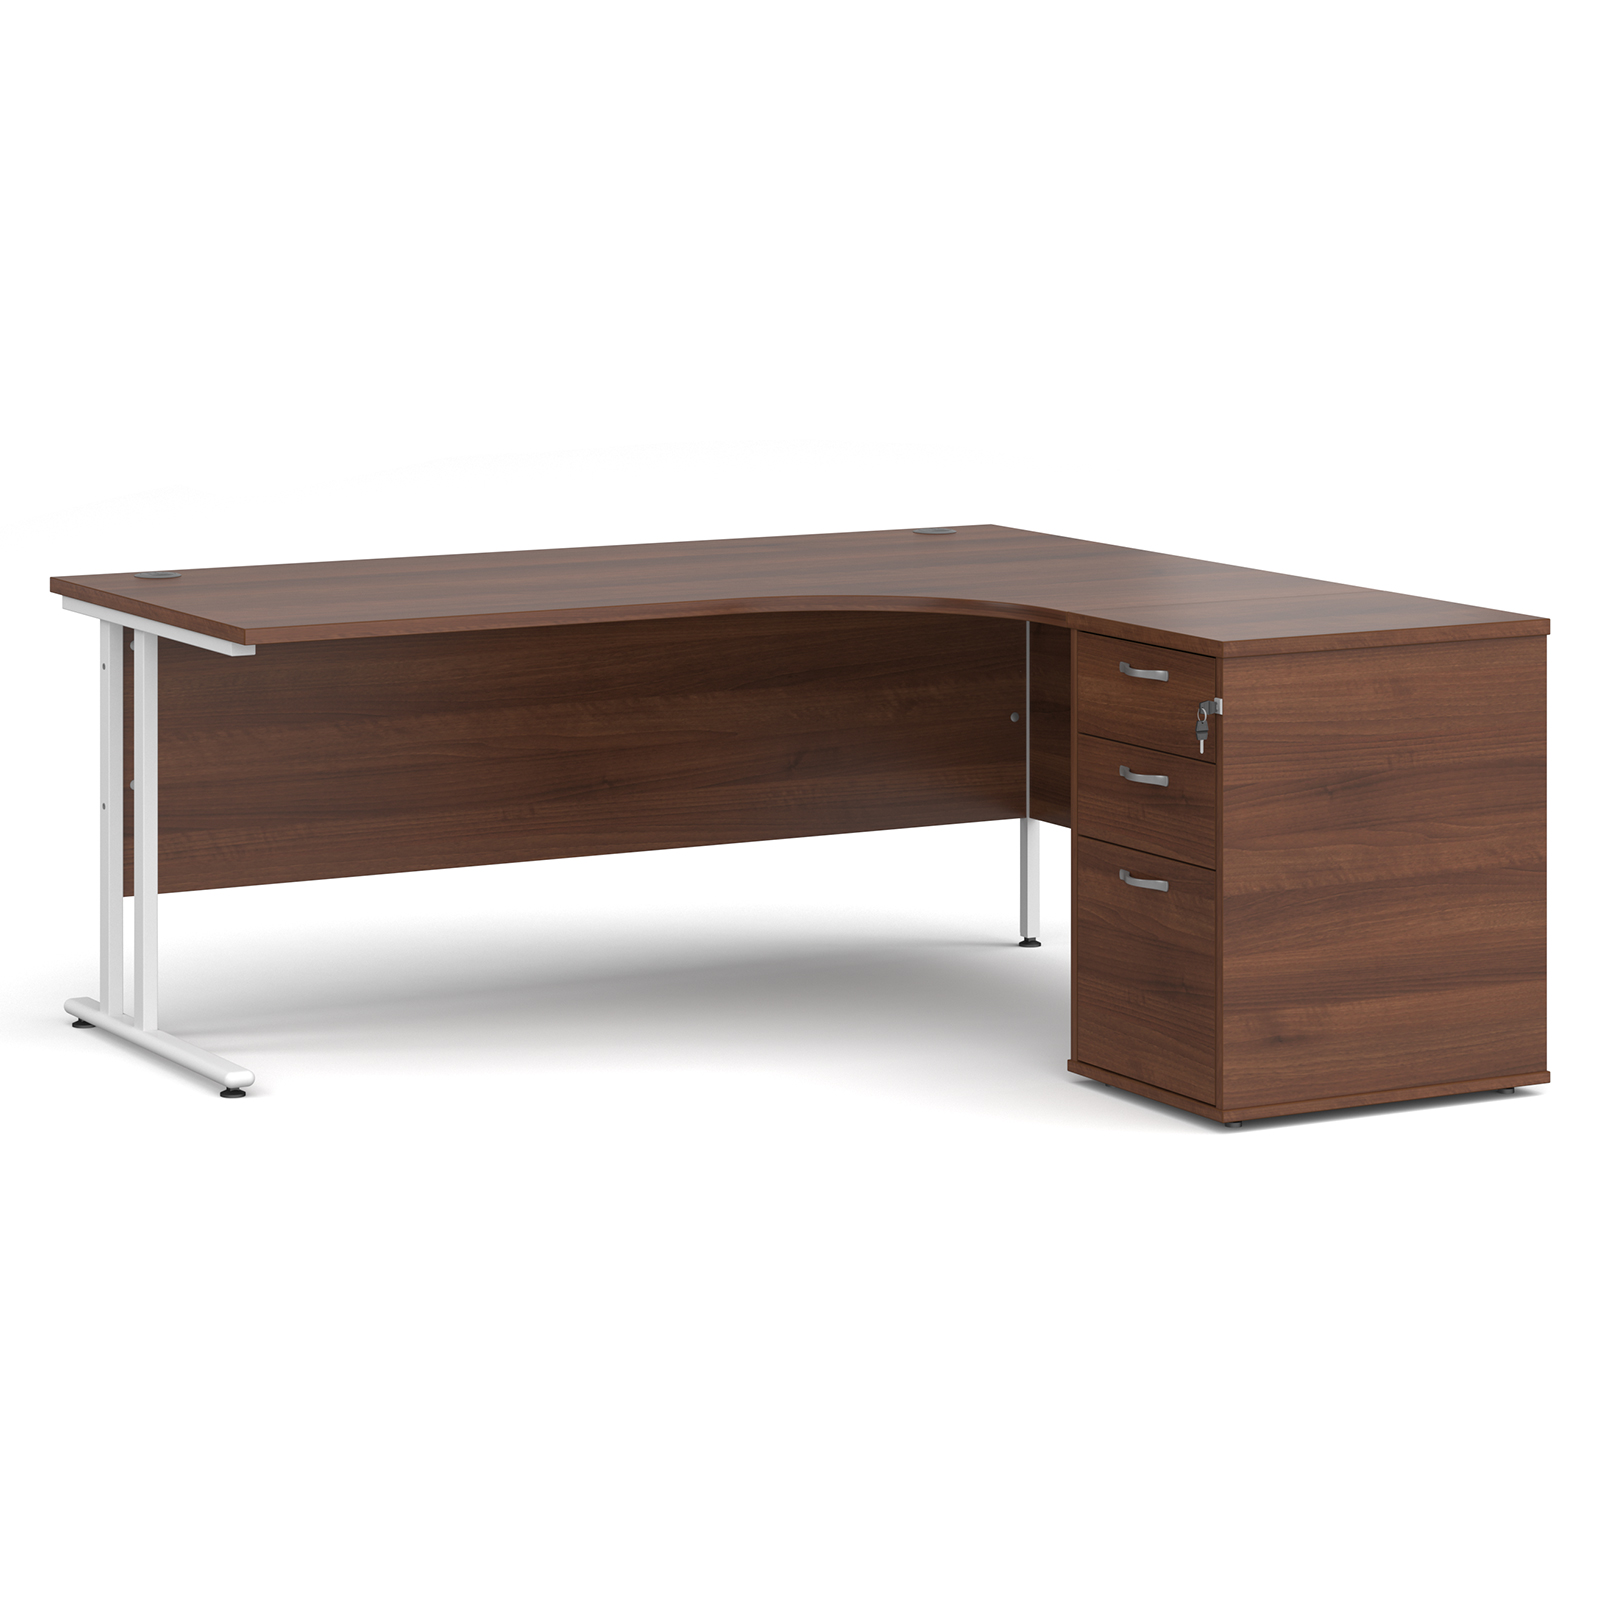 Right Handed Maestro 25 right hand ergonomic desk 1800mm with white cantilever frame and desk high pedestal - walnut